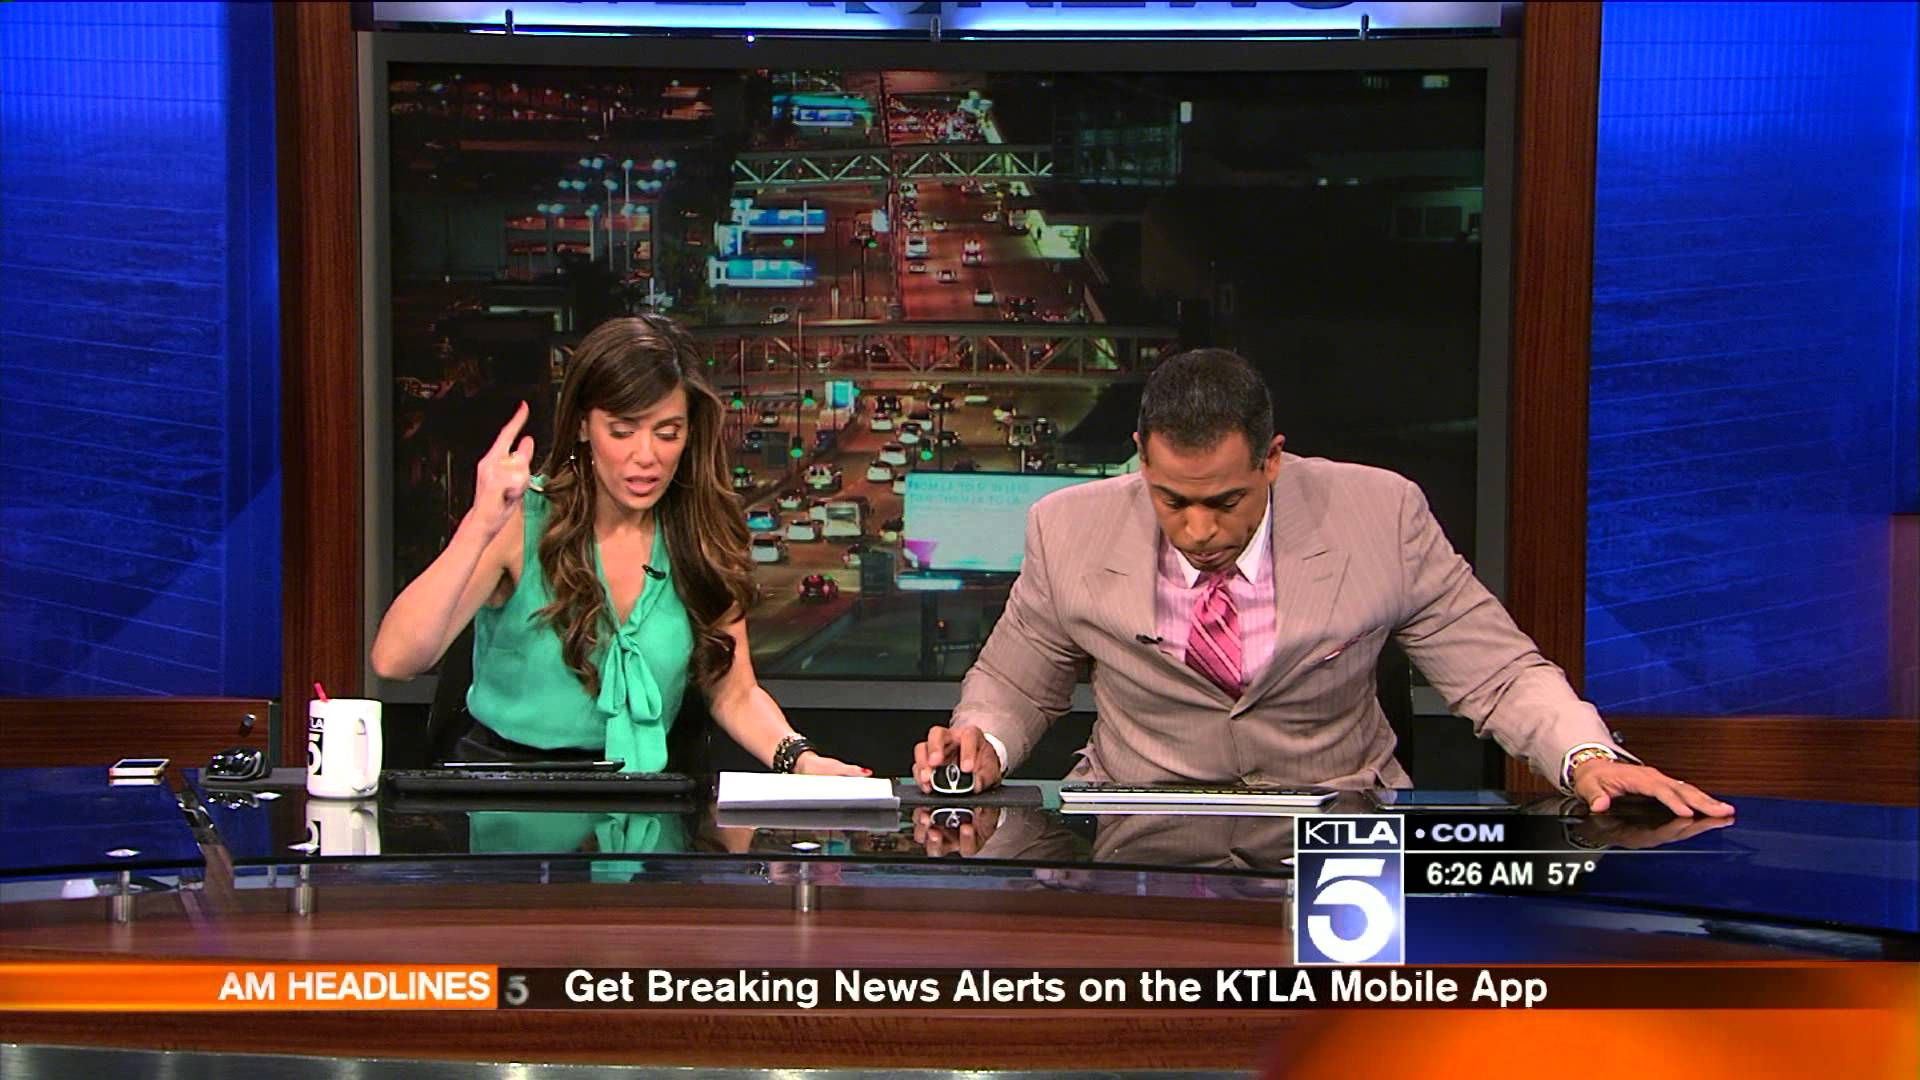 Los Angeles Television News Anchors React As Earthquake Hits During Live Broadcast News Anchor Live Tv Nbc News Anchors